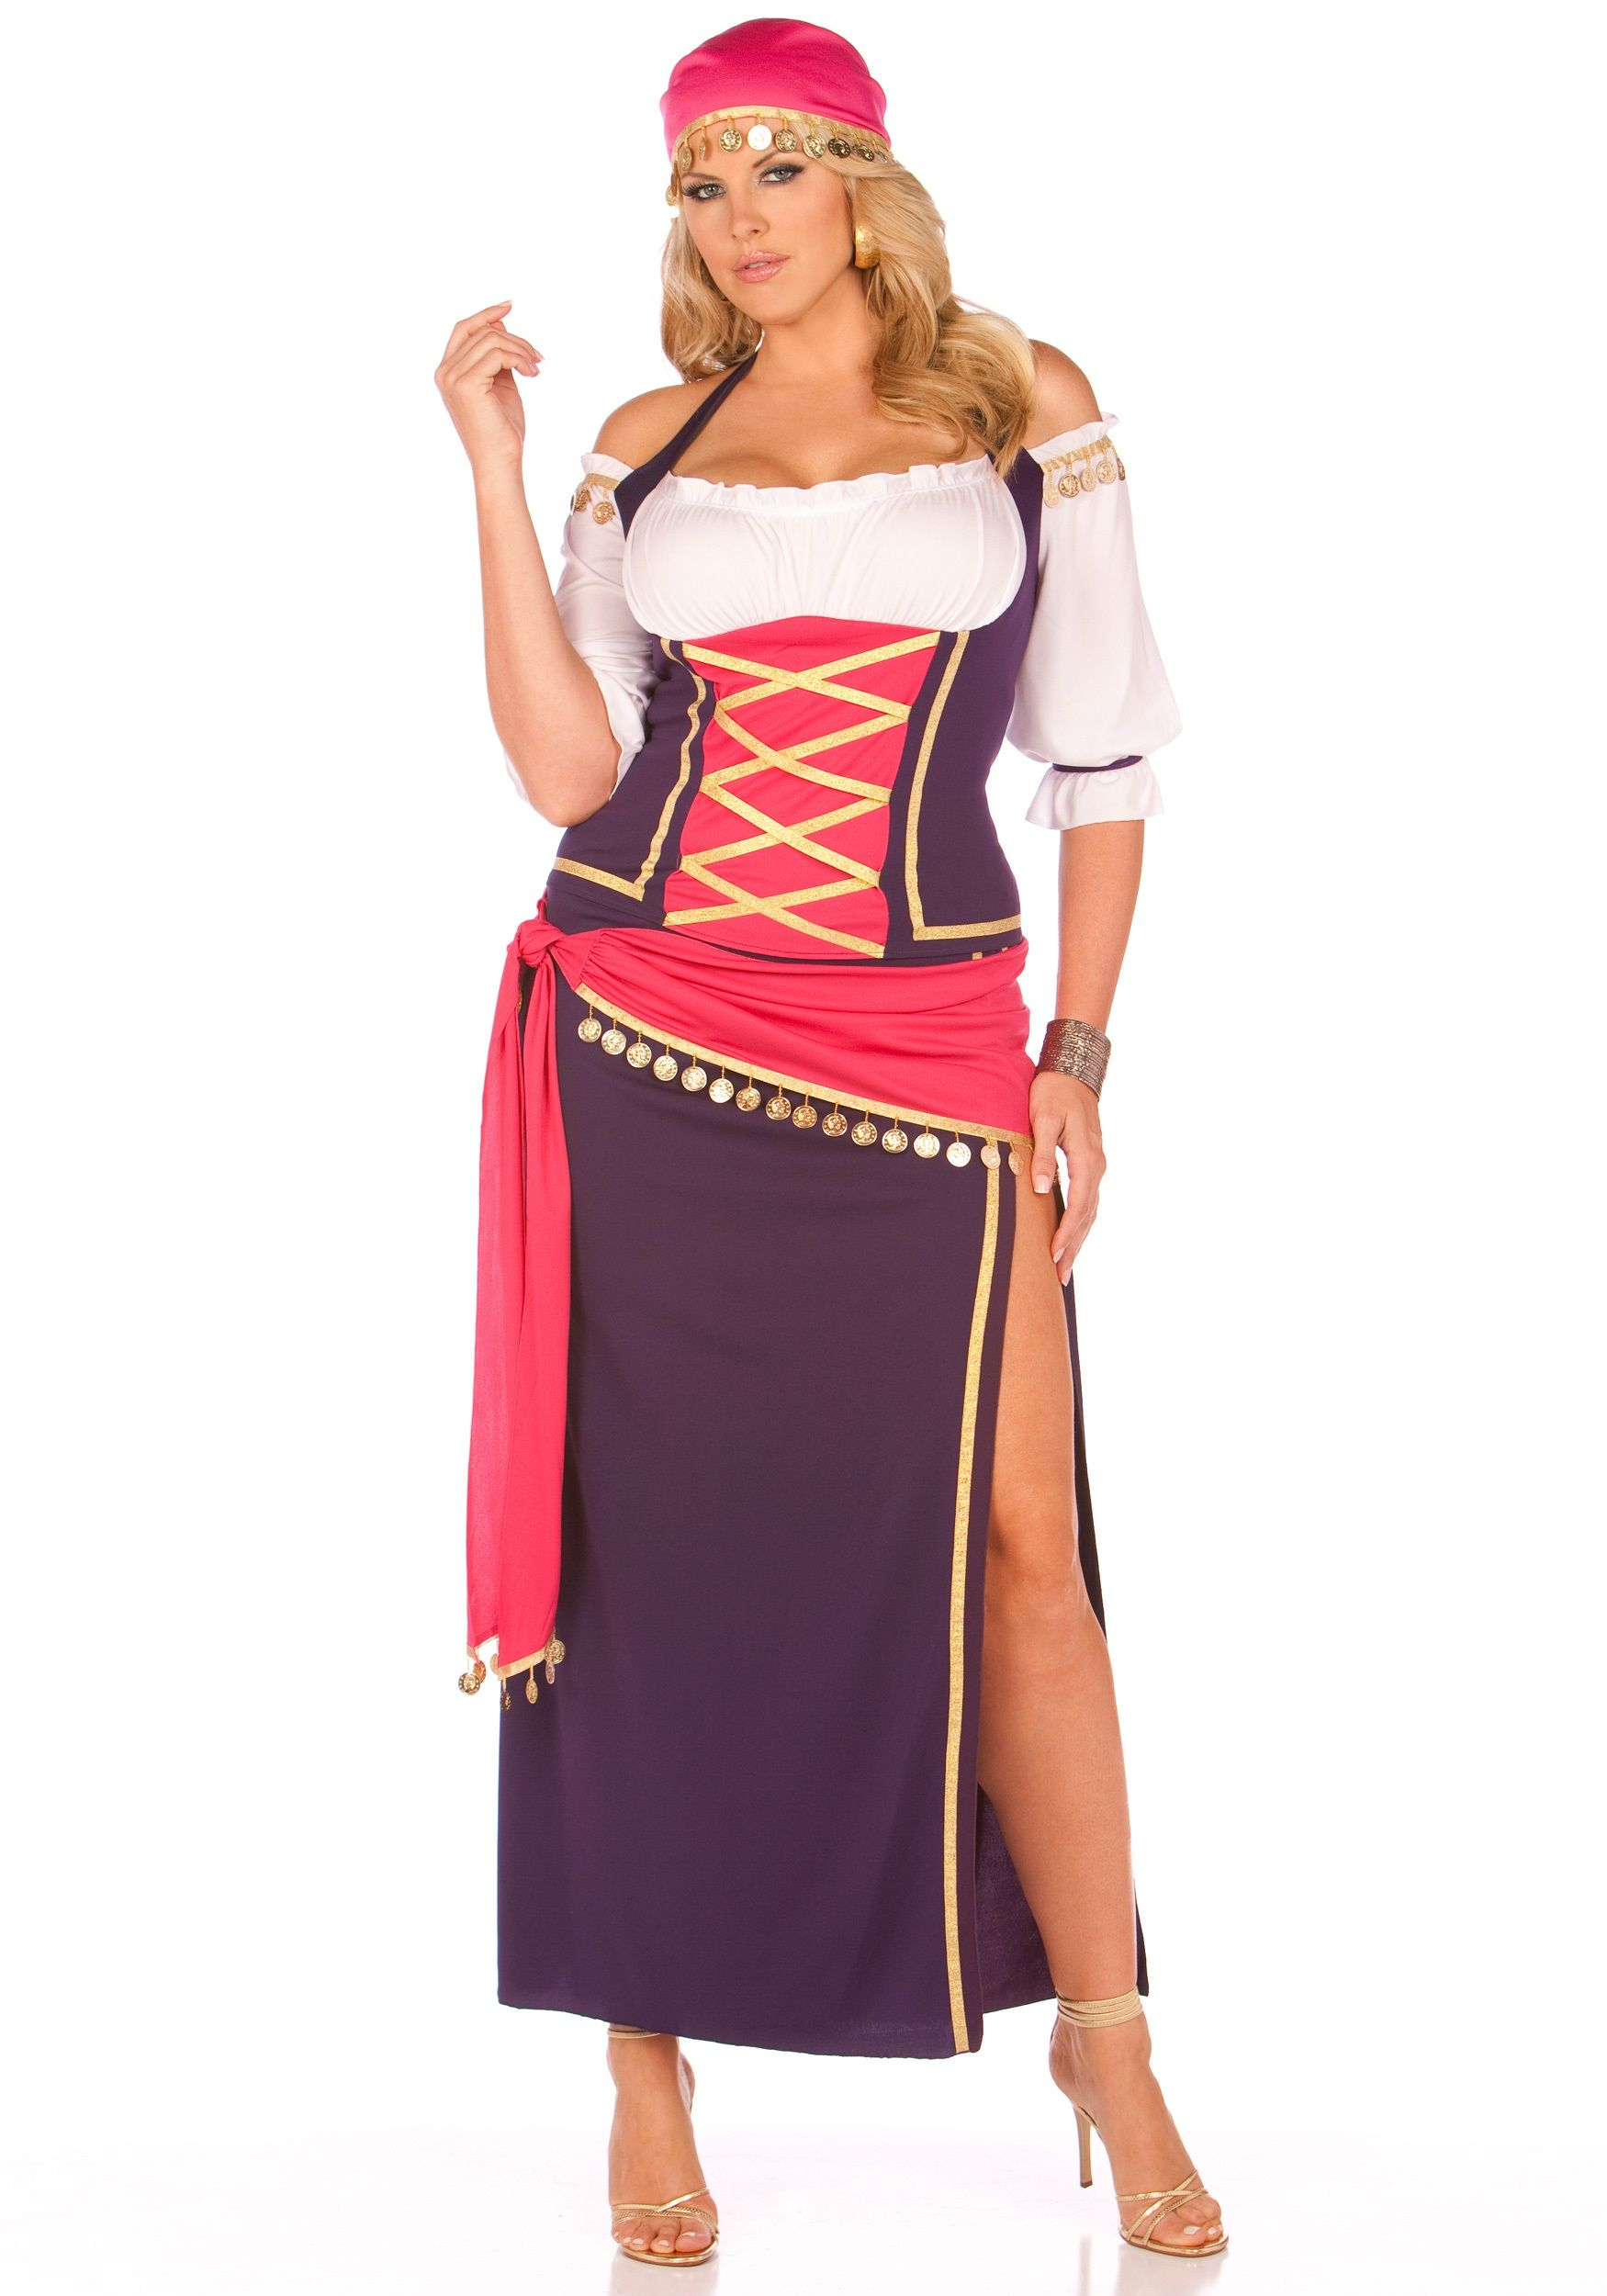 plus size halloween costumes for women home halloween costume ideas gypsy costume ideas plus size